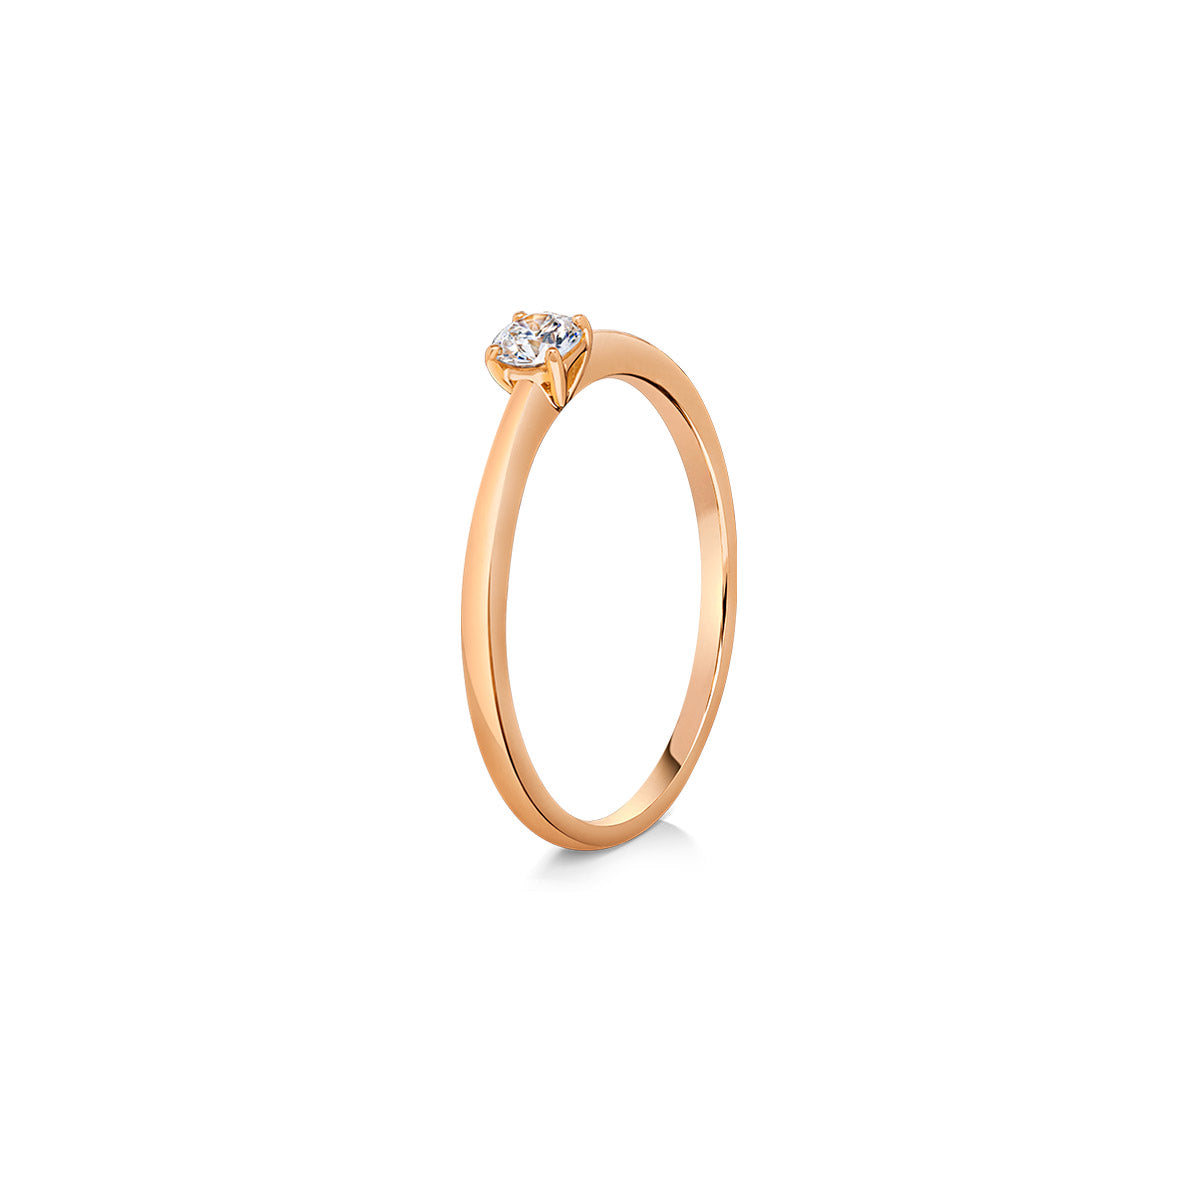 THIN SOLITAIRE ENG. RING